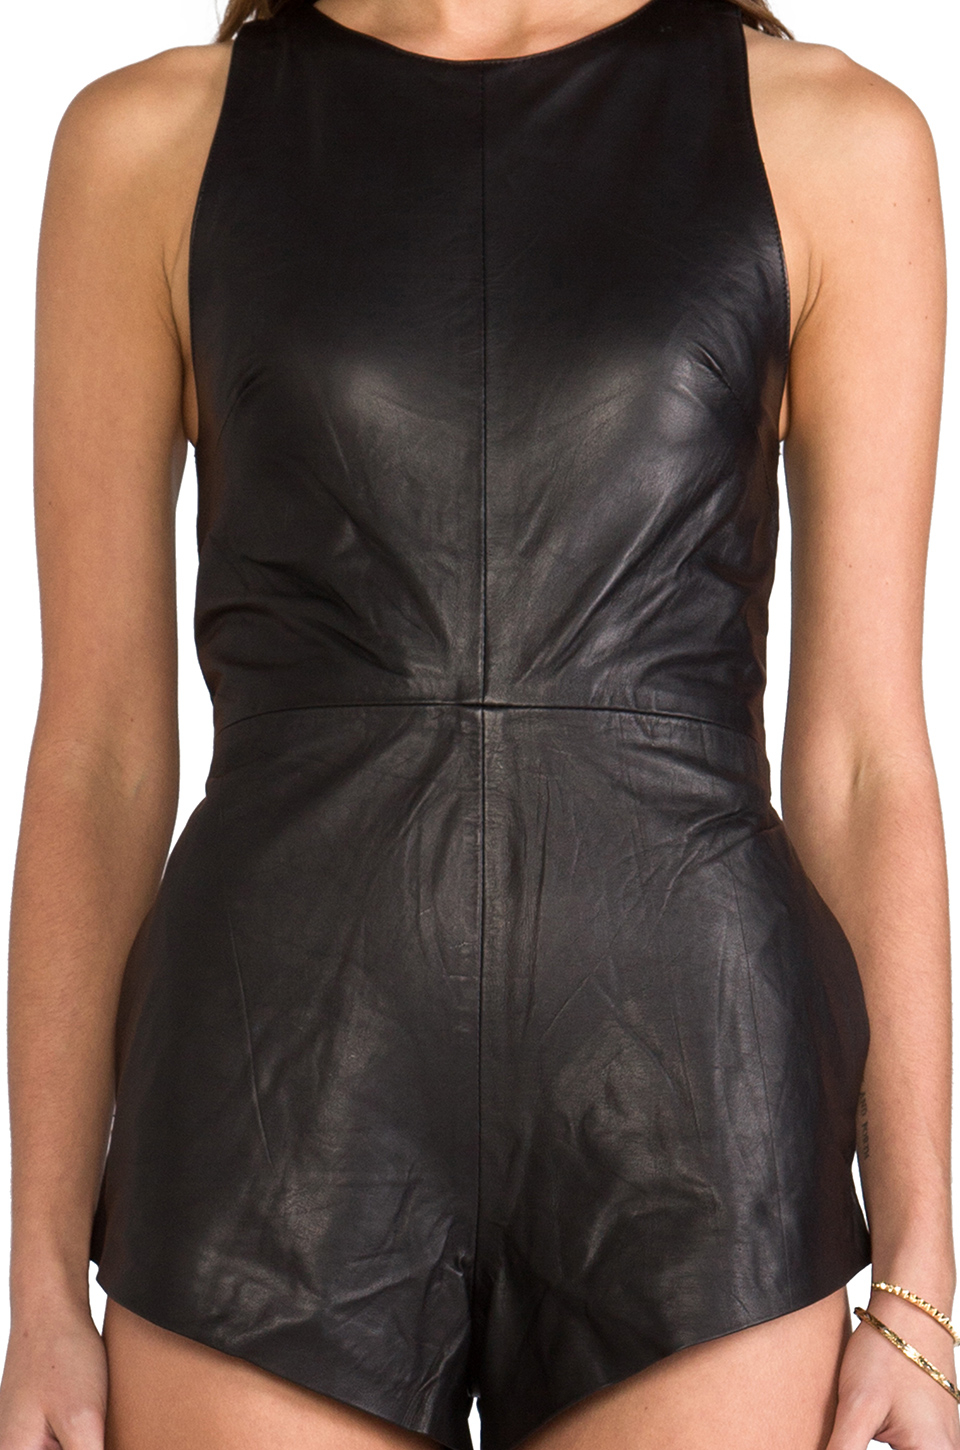 7e72f492203 Lyst - One Teaspoon The Bond Leather Romper in Black in Black